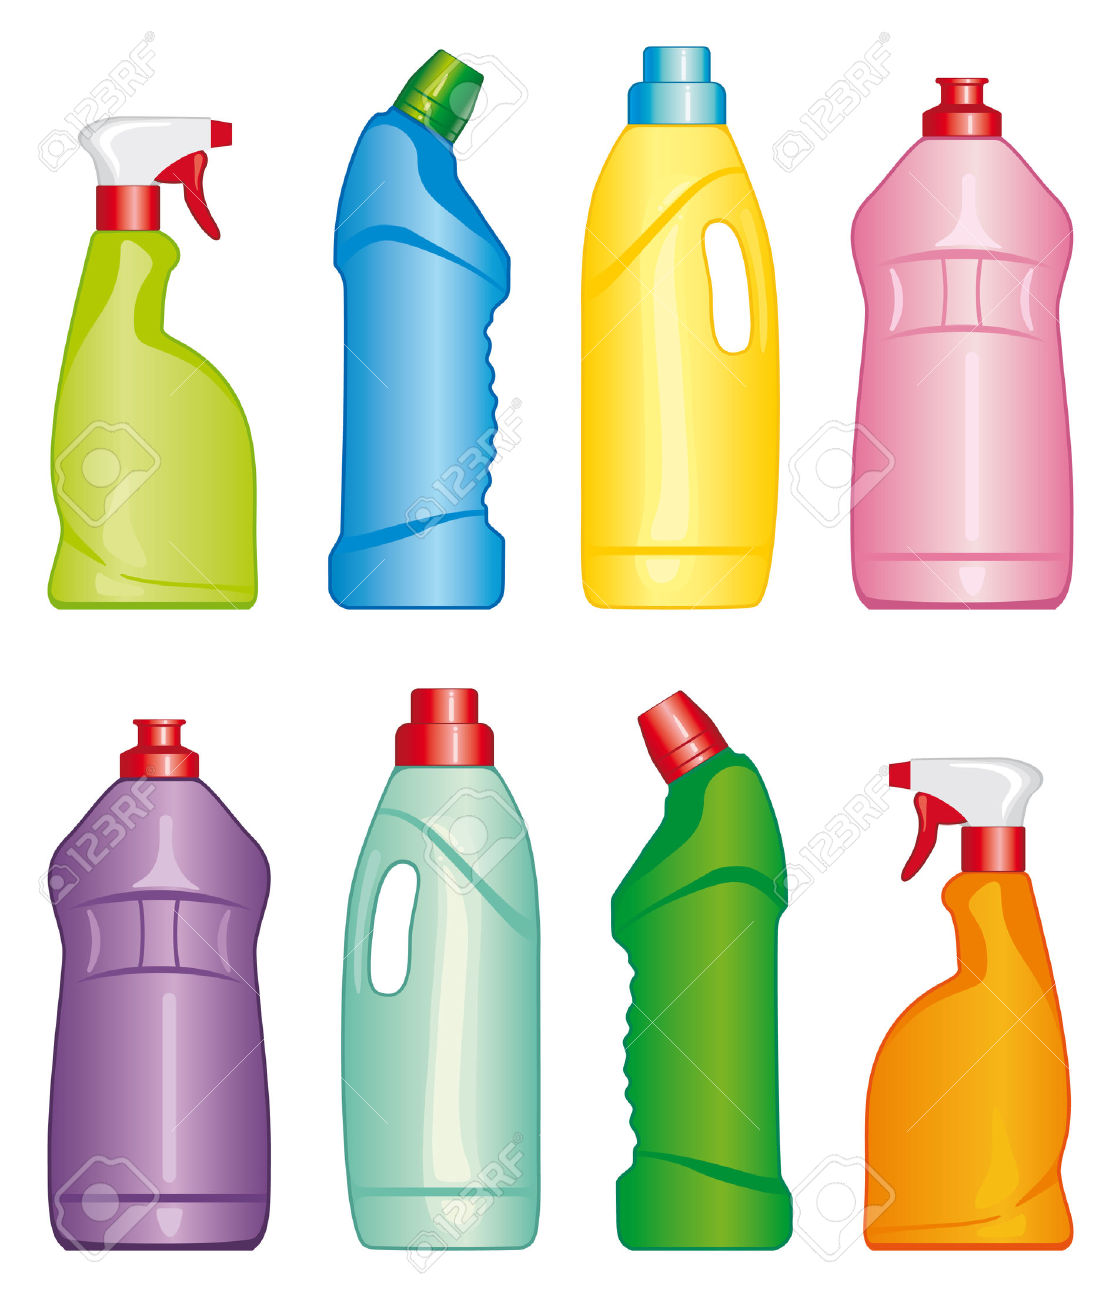 cleaning products clipart